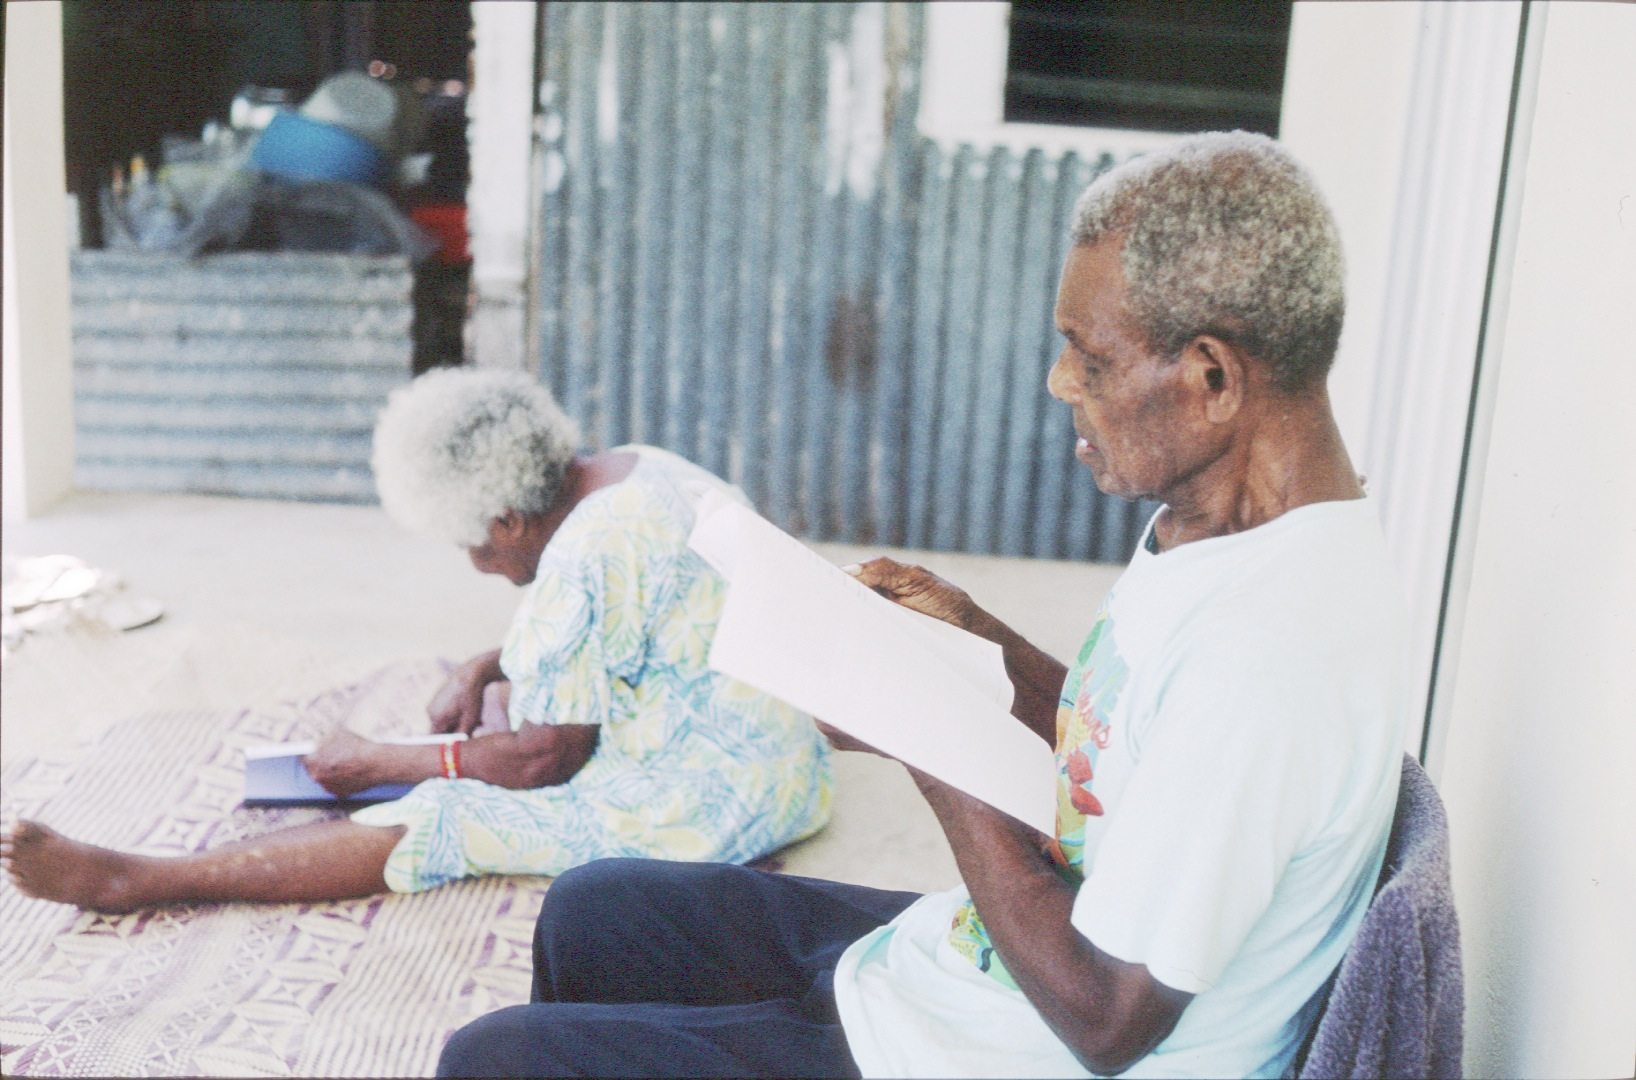 Apu Kalsarap Nemaf and Limas Kalsarap reading a dictionary of their language. Erakor village, Vanuatu, 2001.